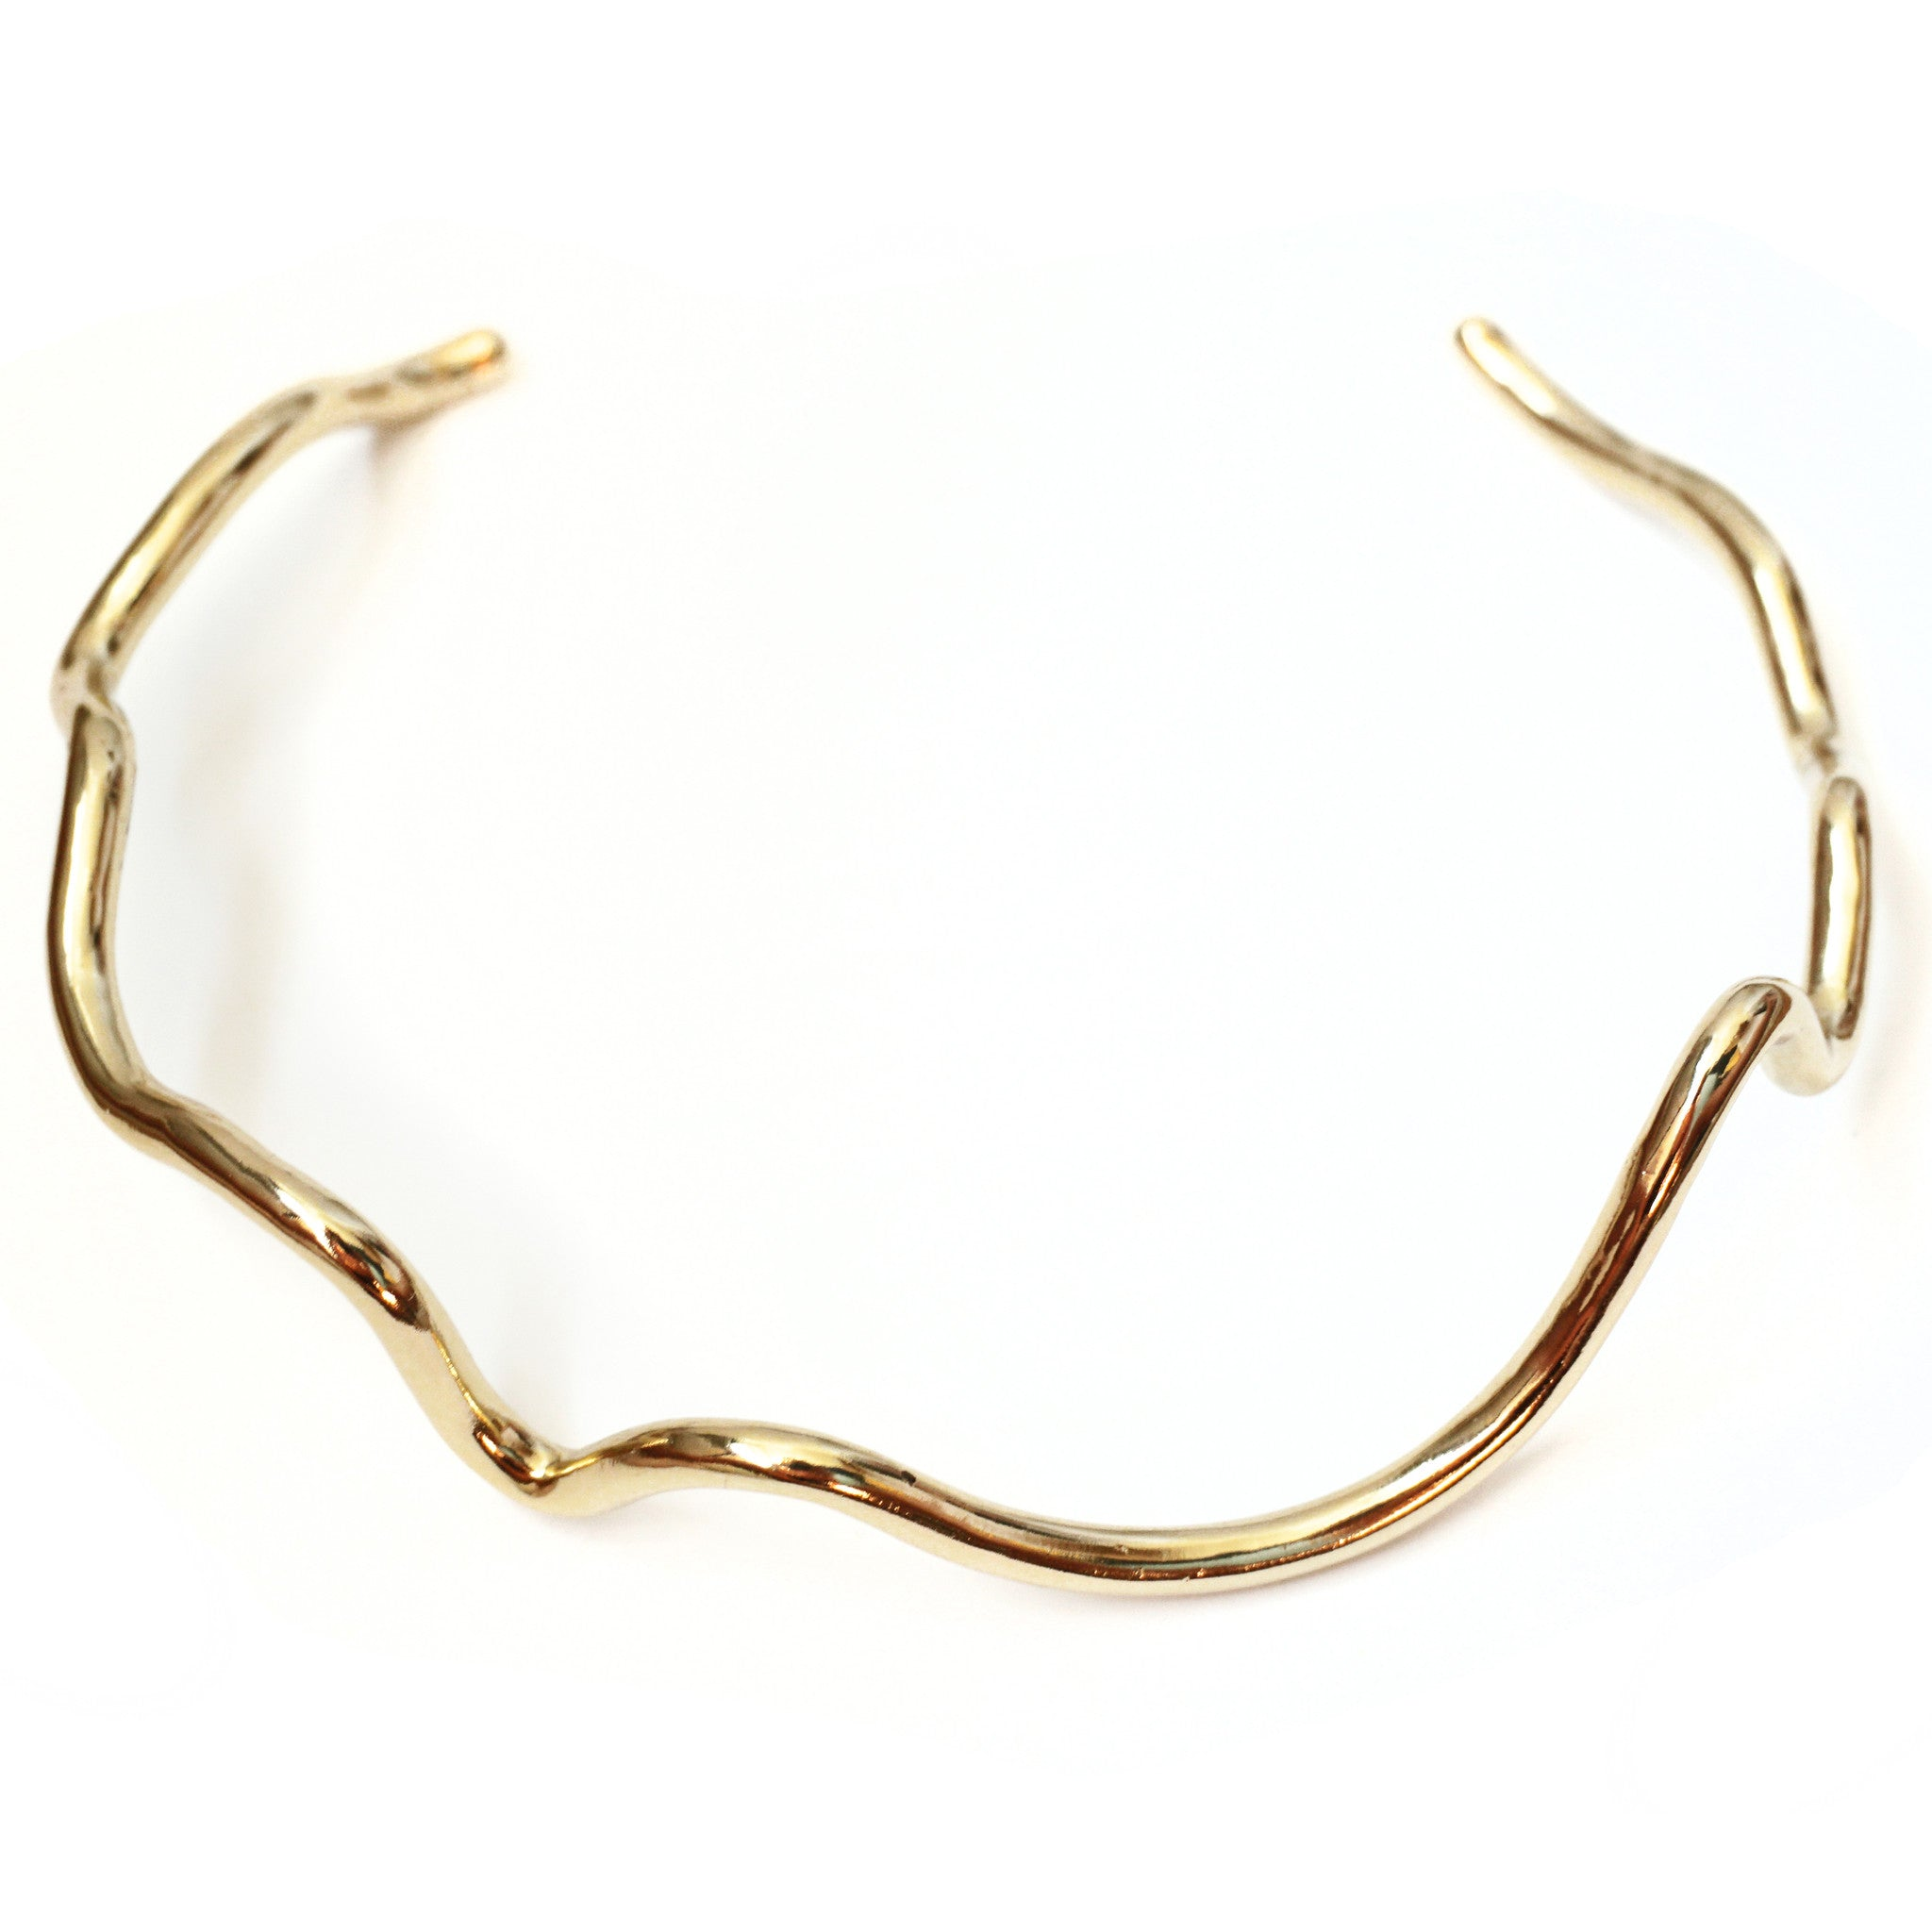 CAROLYN COLBY - GOLD WAVE CHOKER